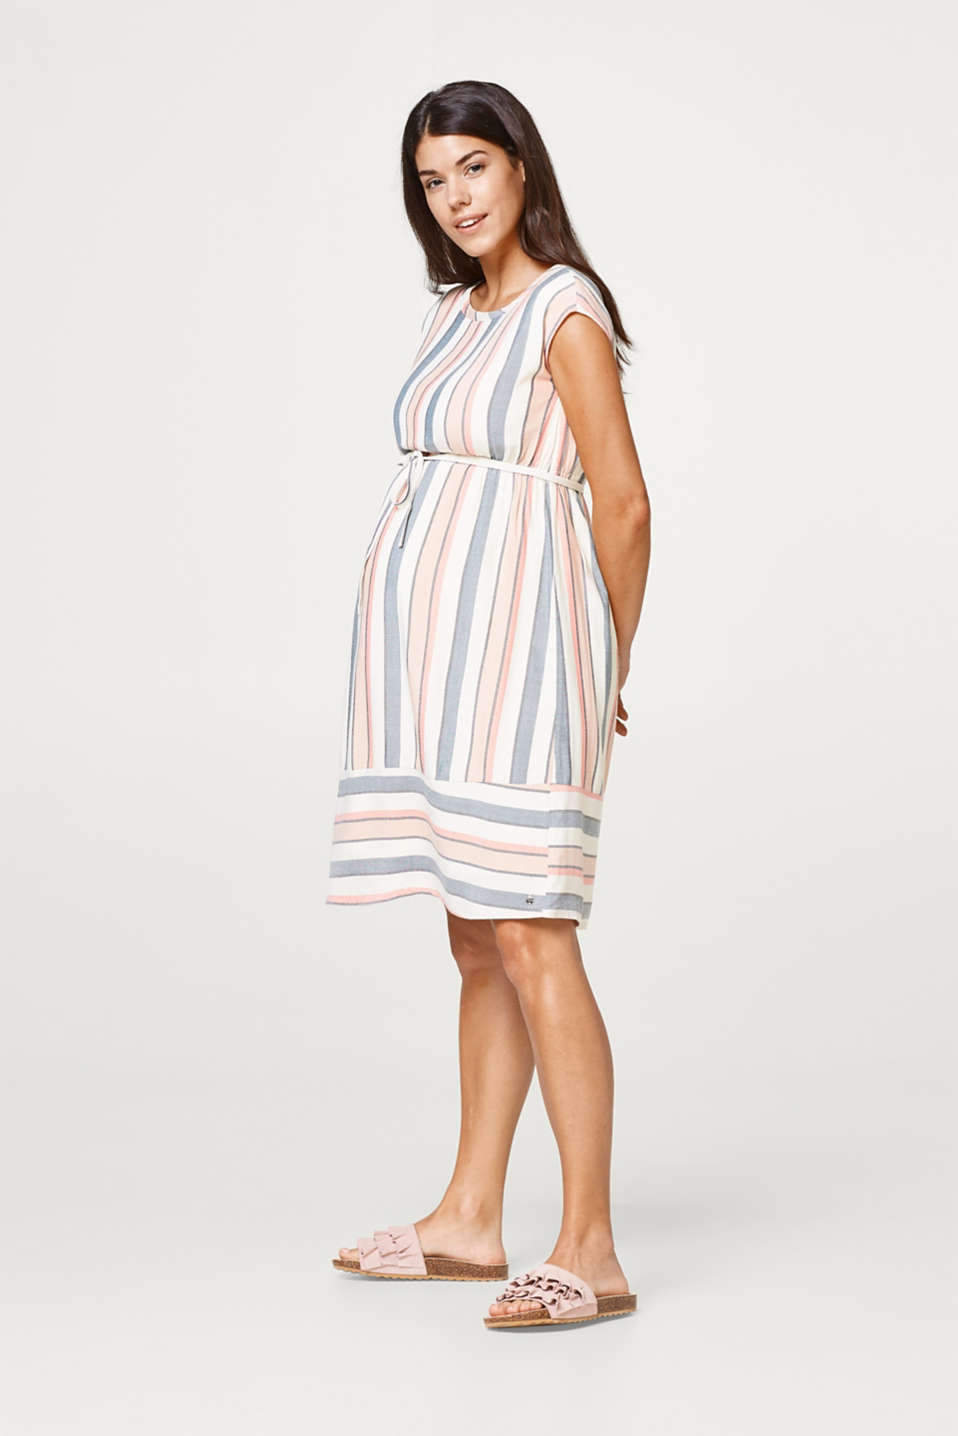 Striped summer dress + cotton lining